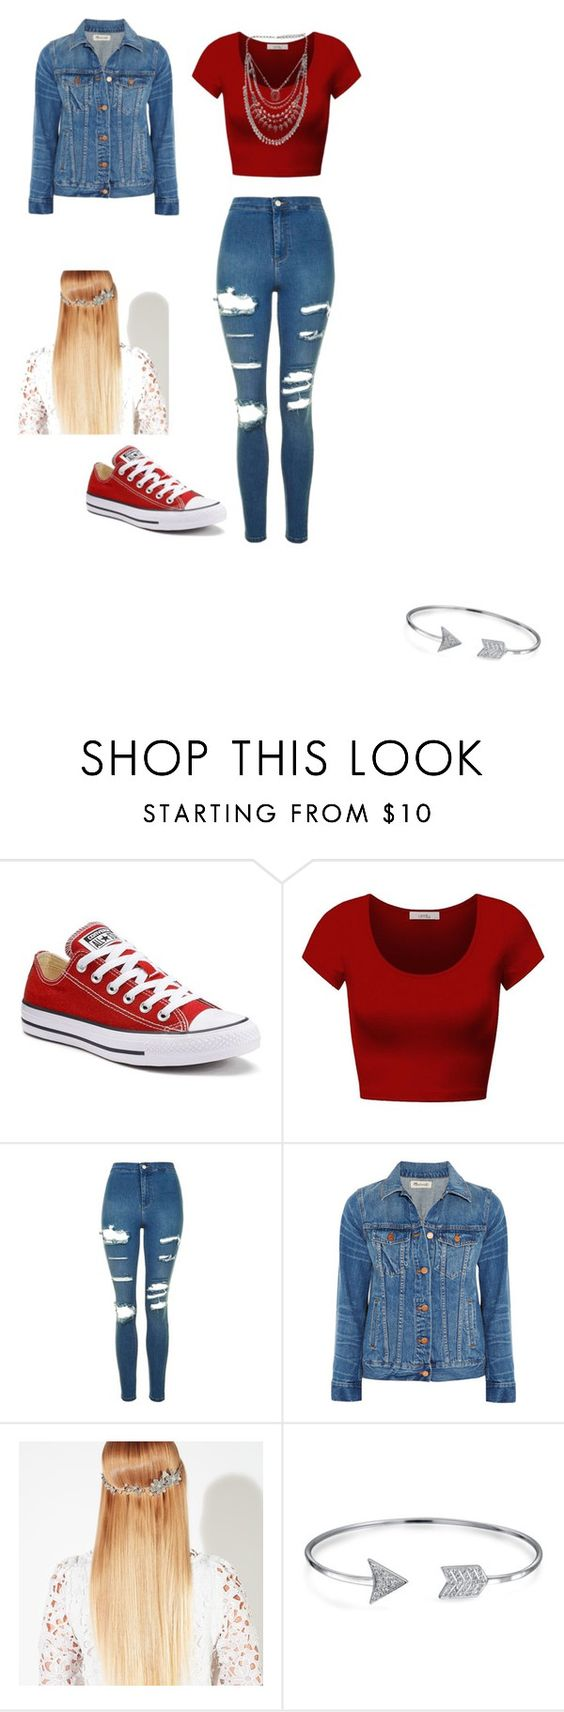 """""""Red.."""" by gyorgyvanda on Polyvore featuring Converse, DK, Topshop, Madewell, John Lewis and Bling Jewelry"""